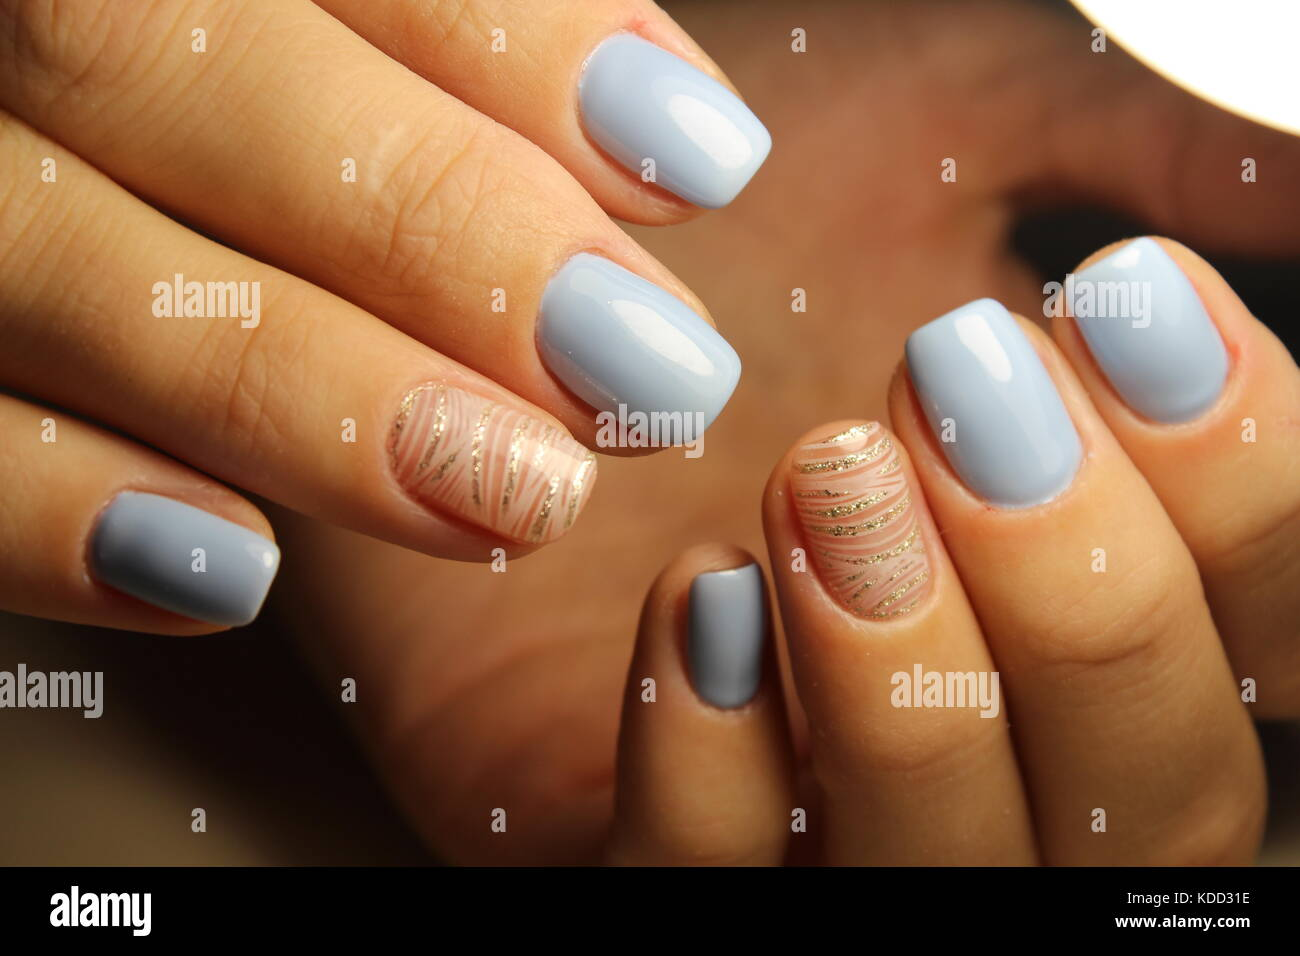 Fashion nails design manicure, best of 2017 Stock Photo, Royalty ...